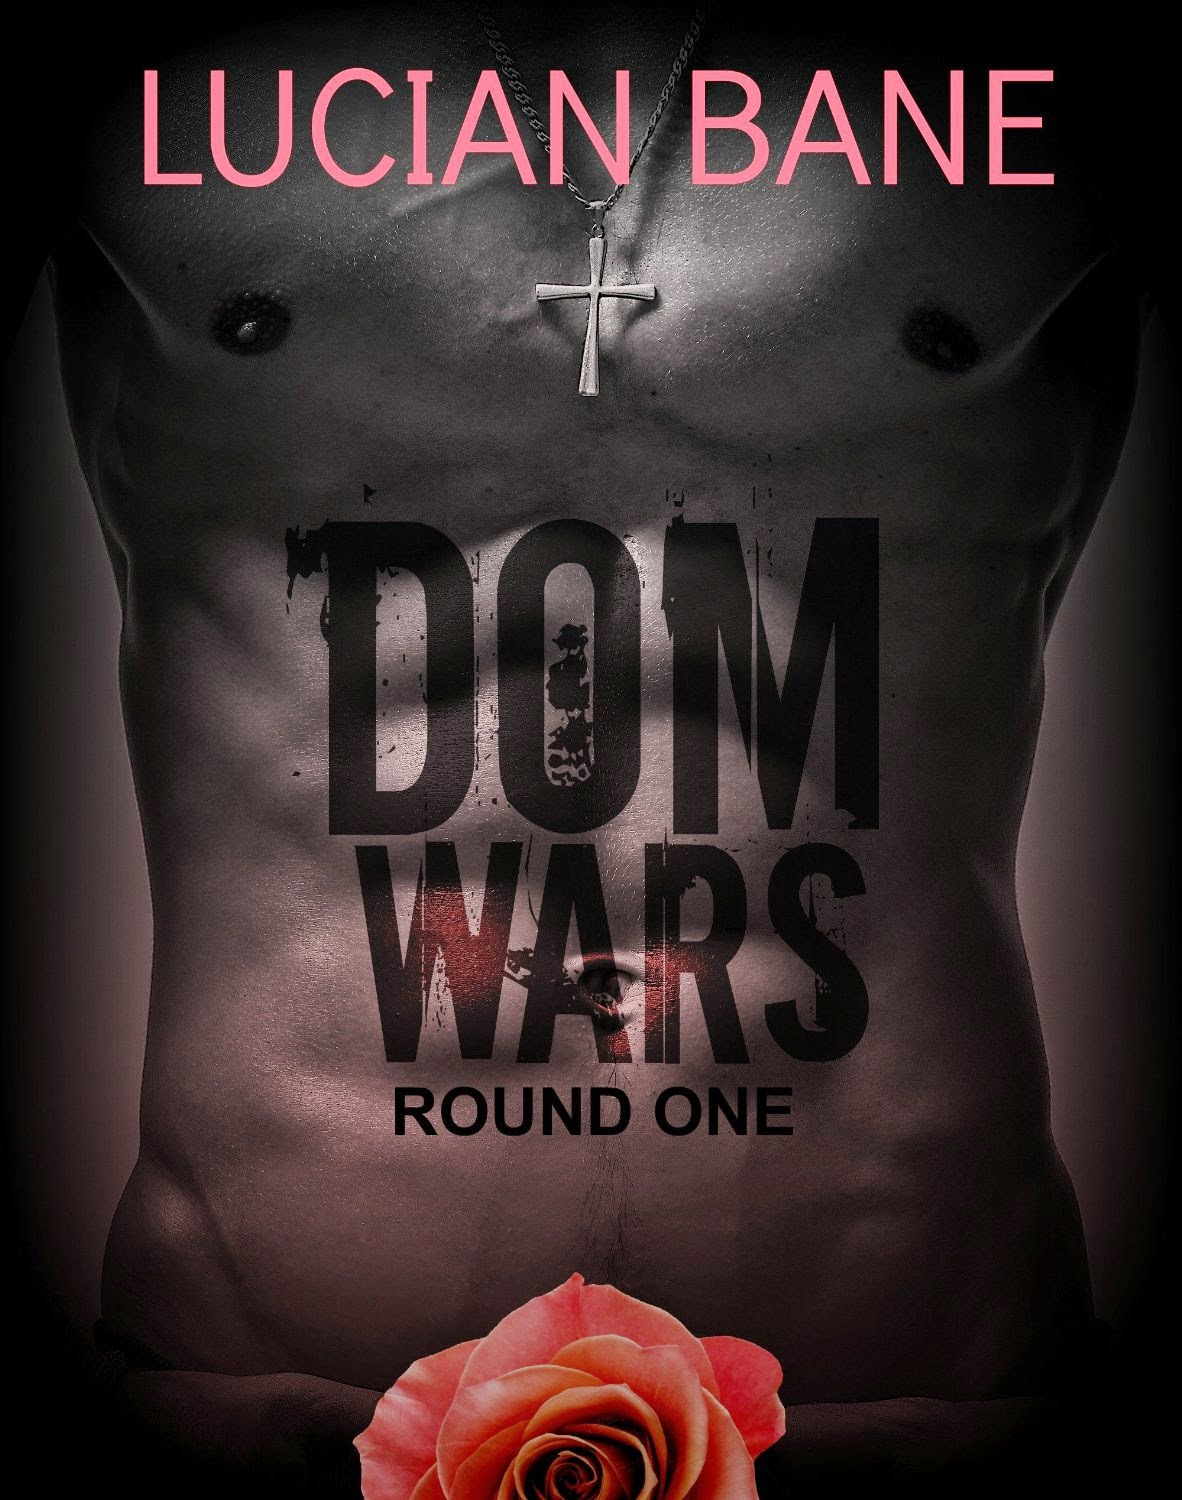 This Is Definitely Different Than Other Bdsm Books That I Have Read And  Lucian Bane Isn't Anything Like The Previous Doms I've Read About Either